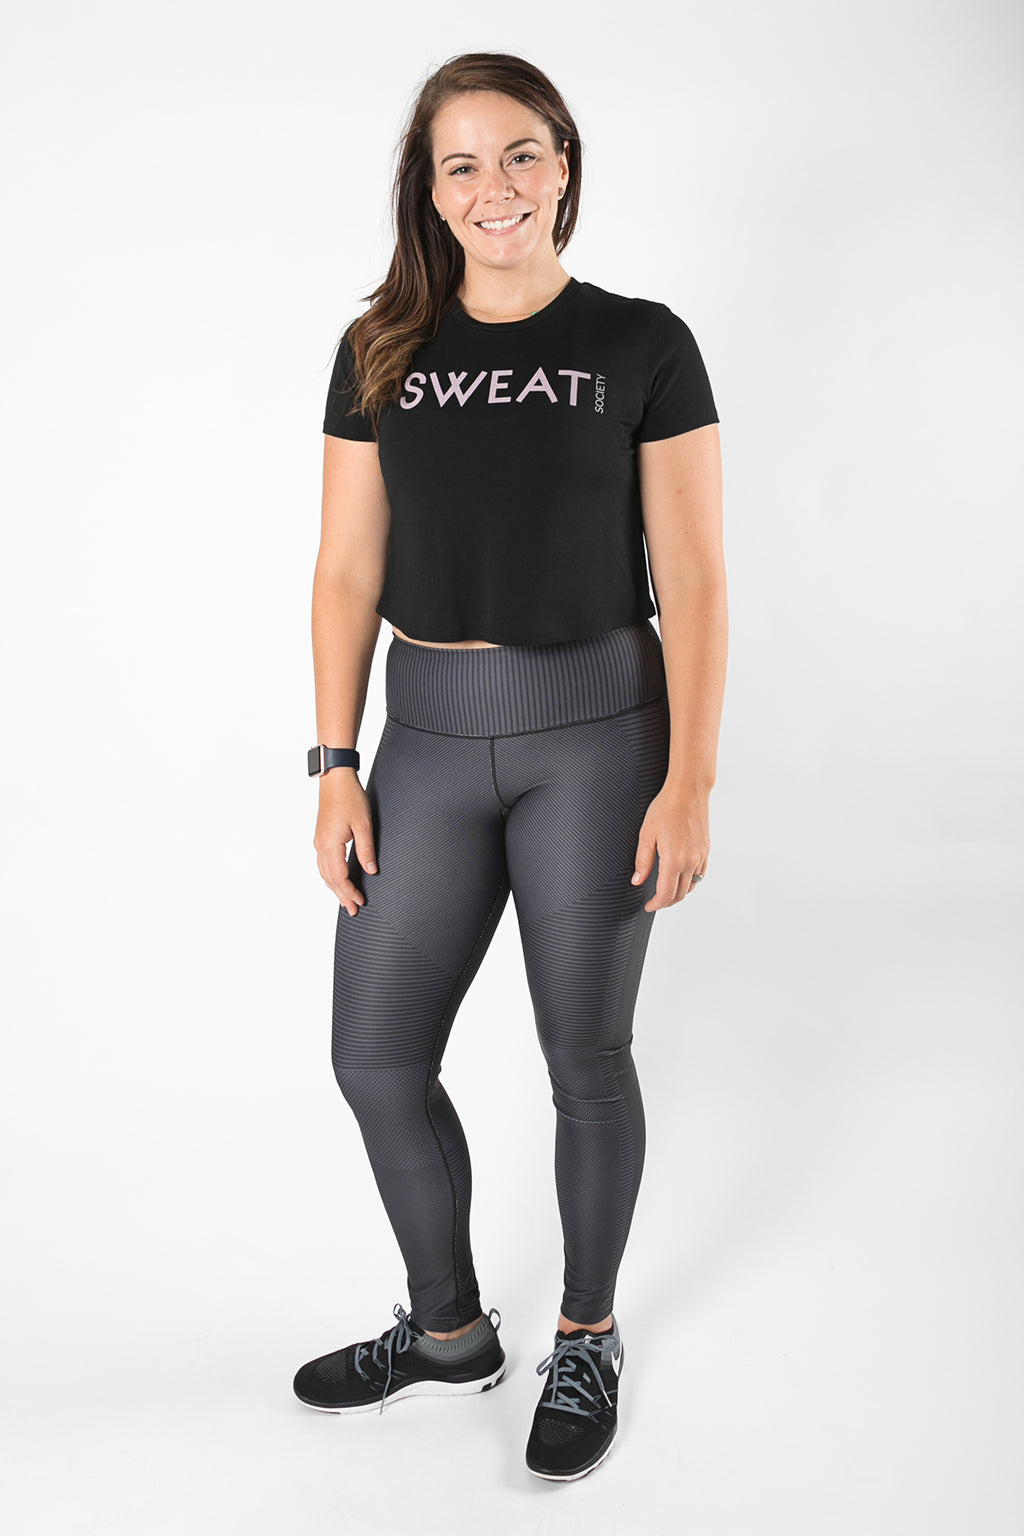 Sweat Society Bridgette Cropped Tee Ethical Activewear